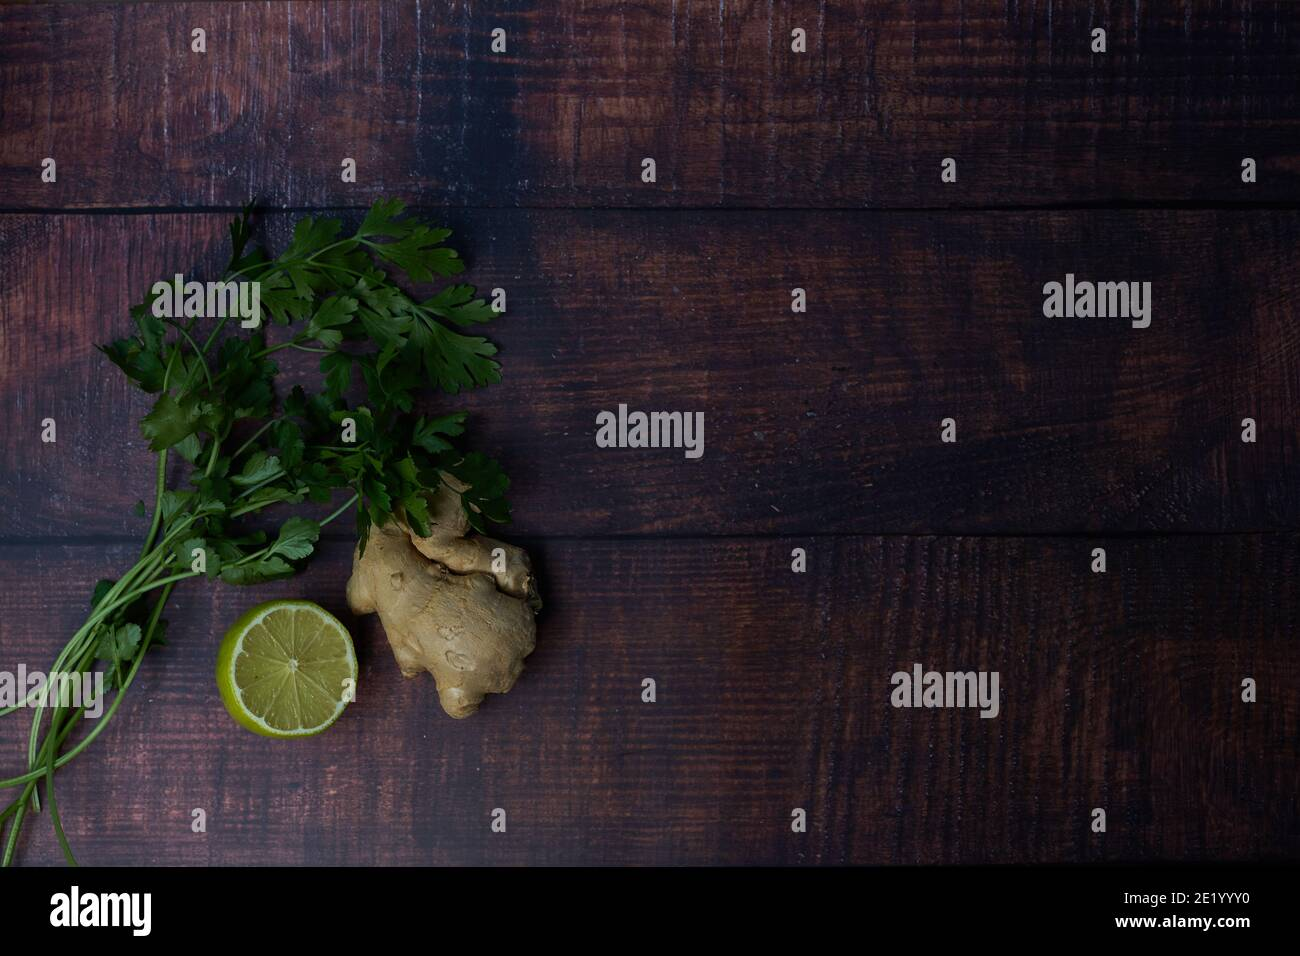 Fresh ingredients on wooden board. lime, coriander, parsley. Stock Photo